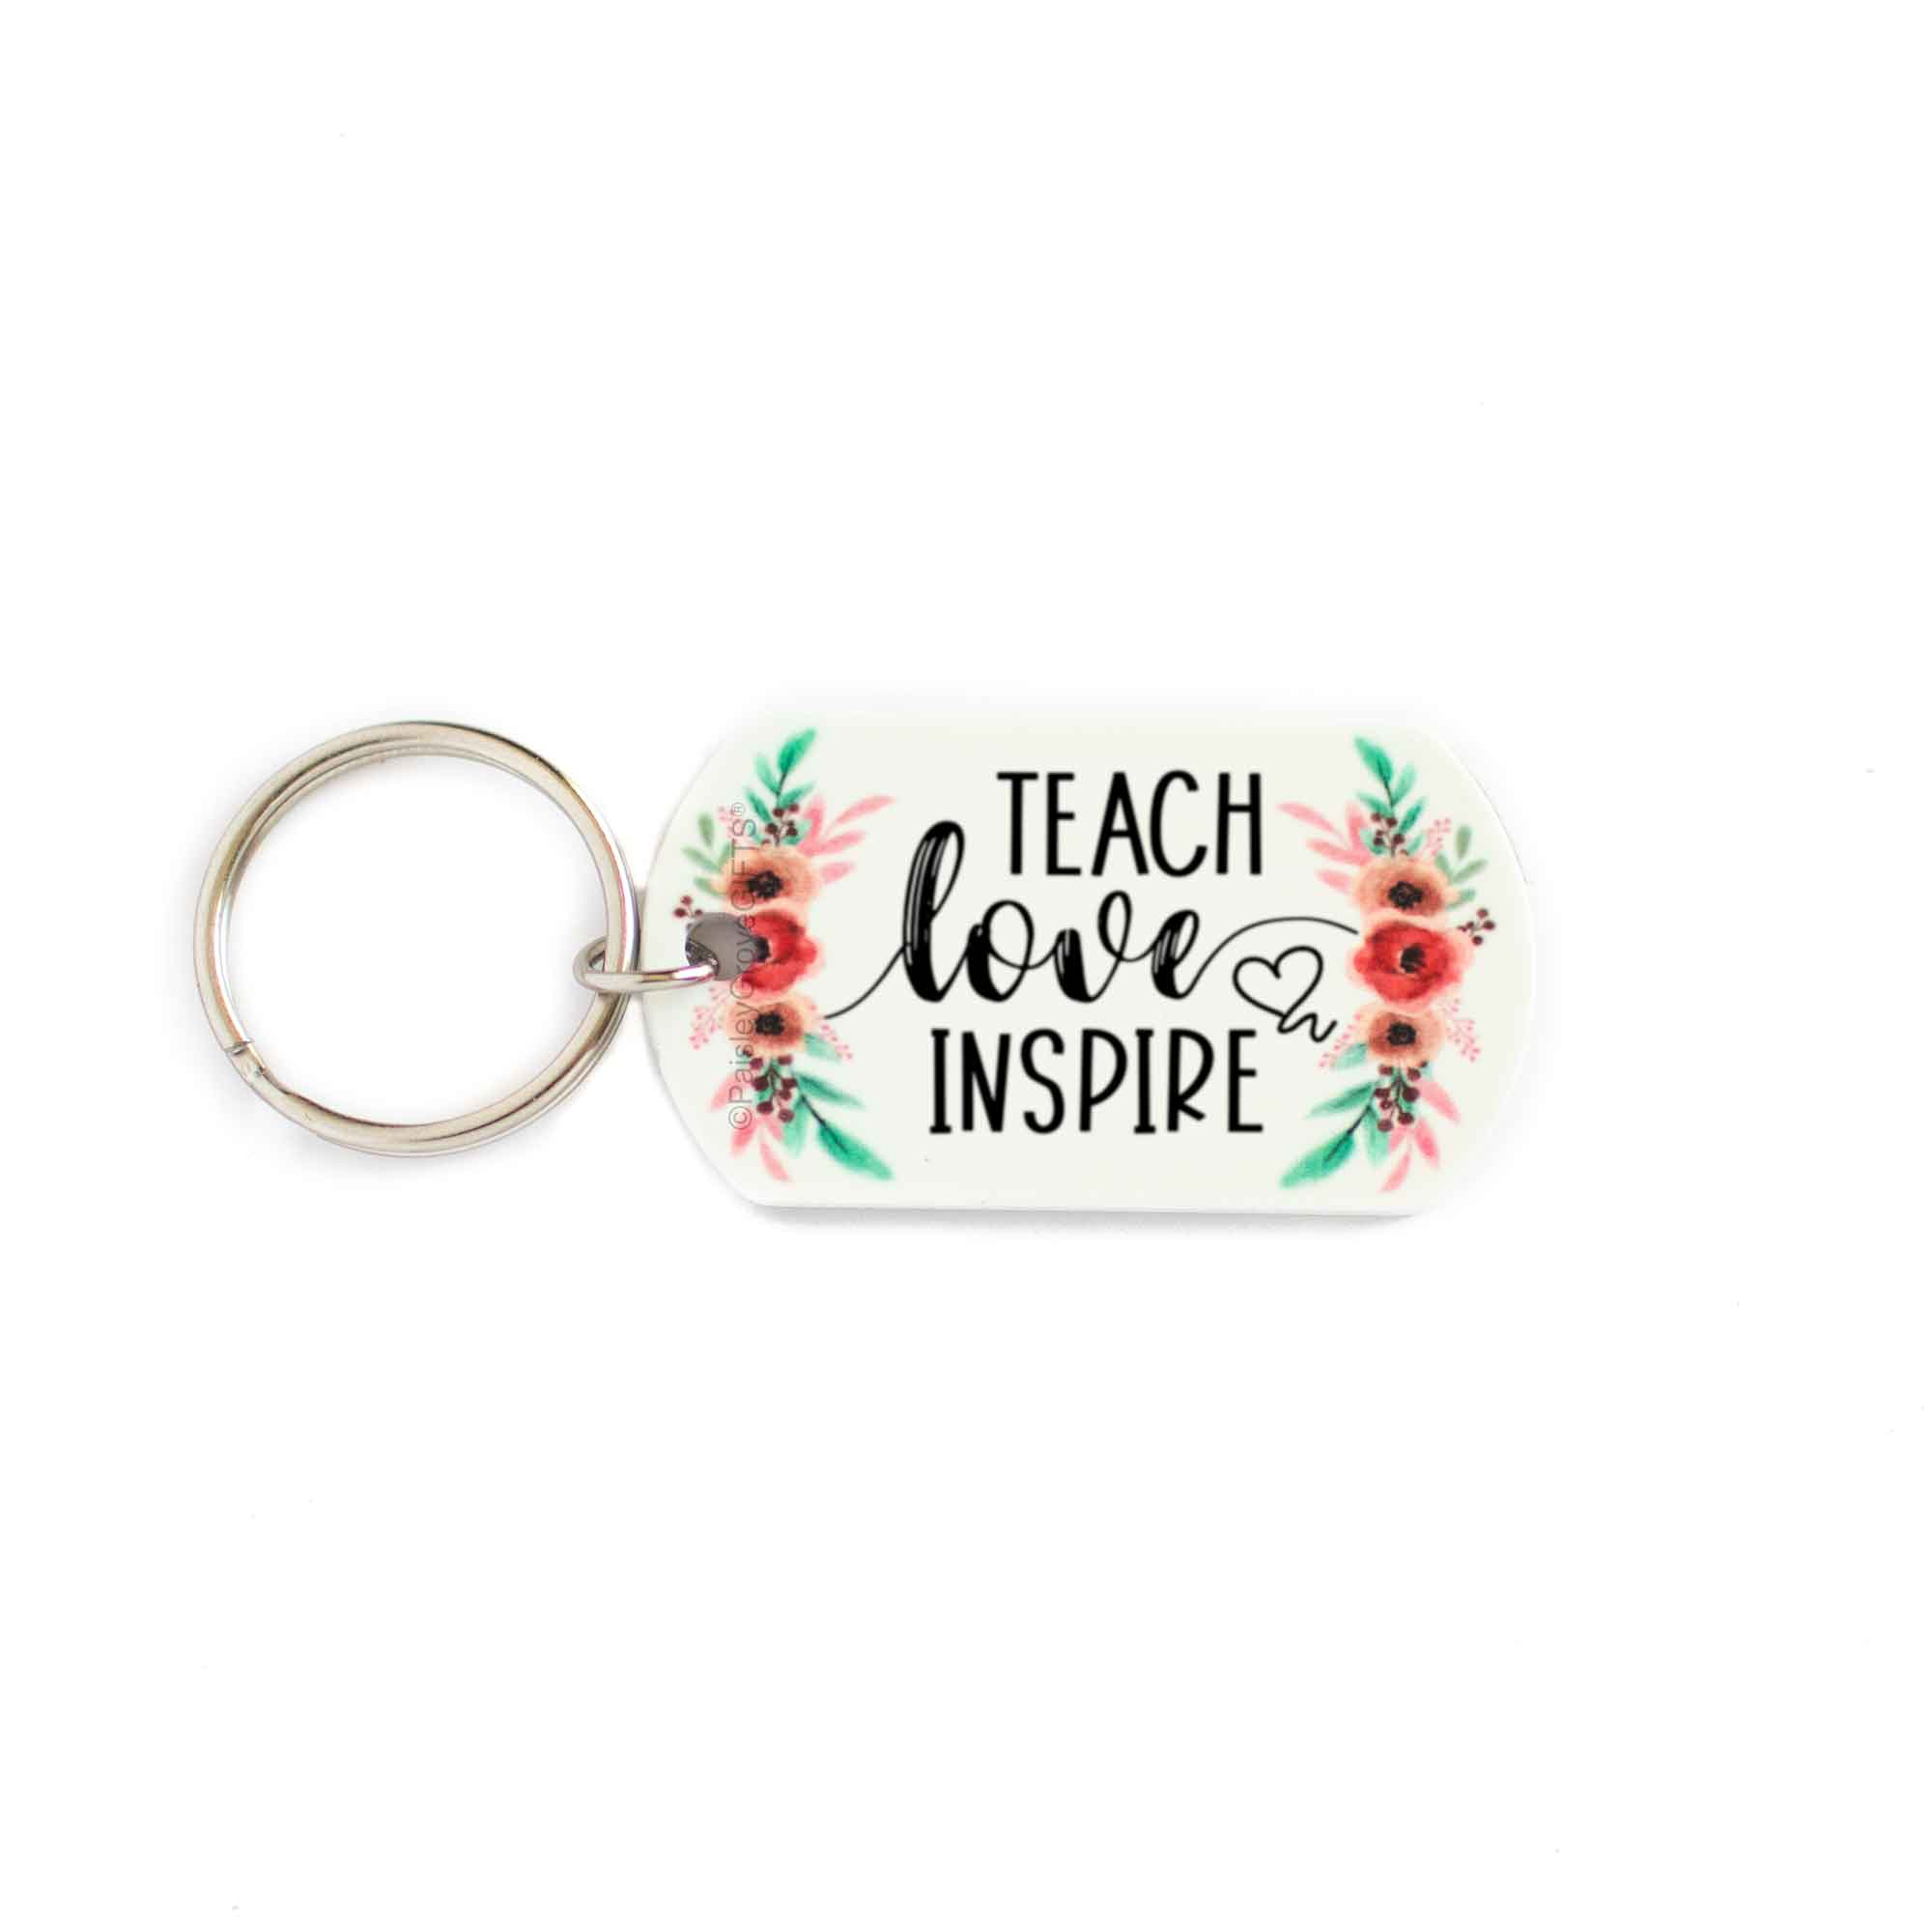 CopyrightPaisleyGroveGIFTS S005b Teach Love Inspire teacher keychain with pink watercolor floral design